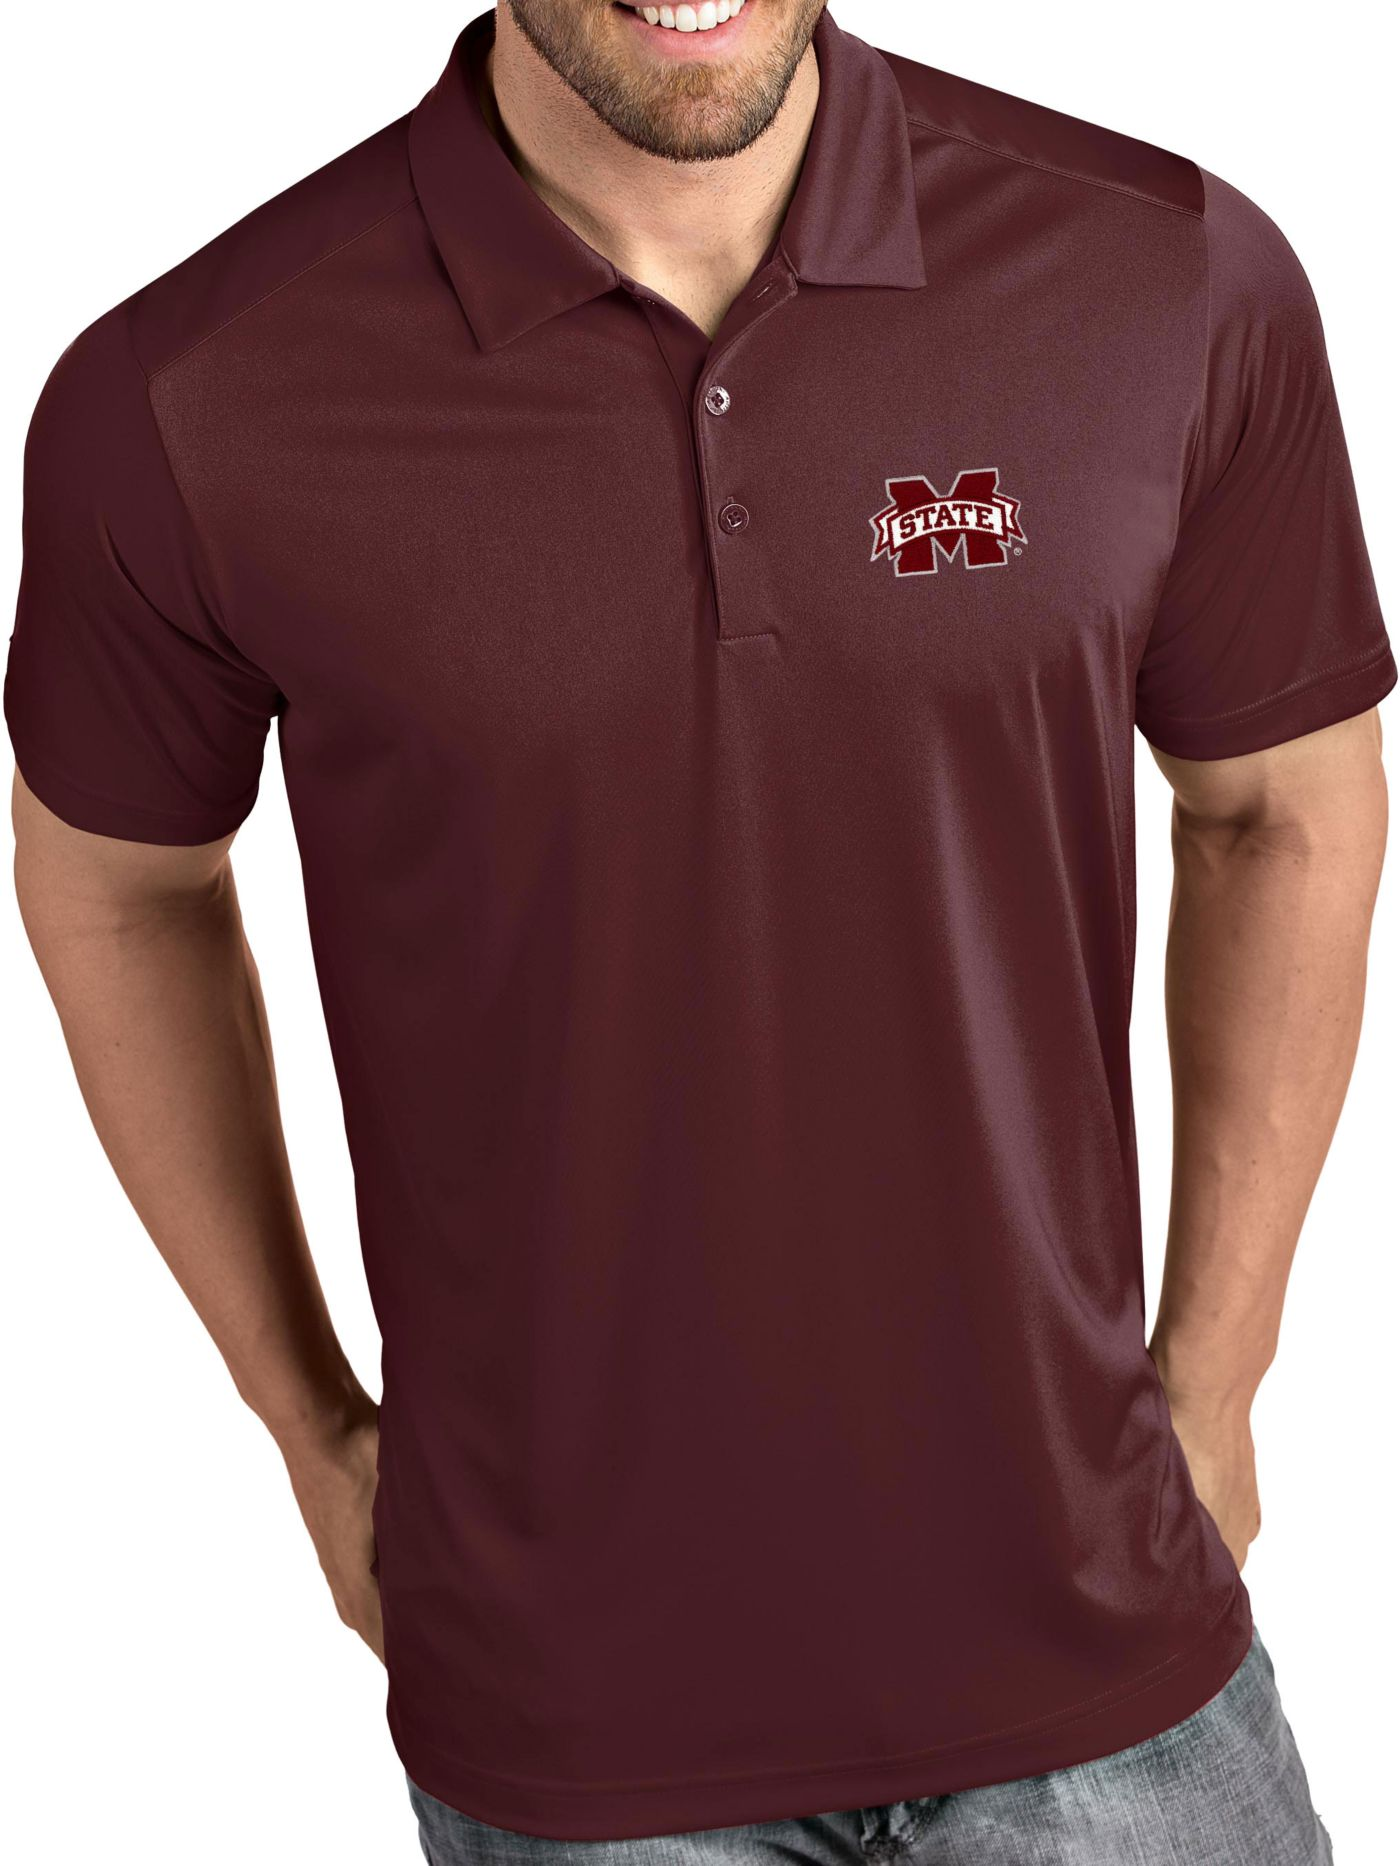 Antigua Men's Mississippi State Bulldogs Maroon Tribute Performance Polo